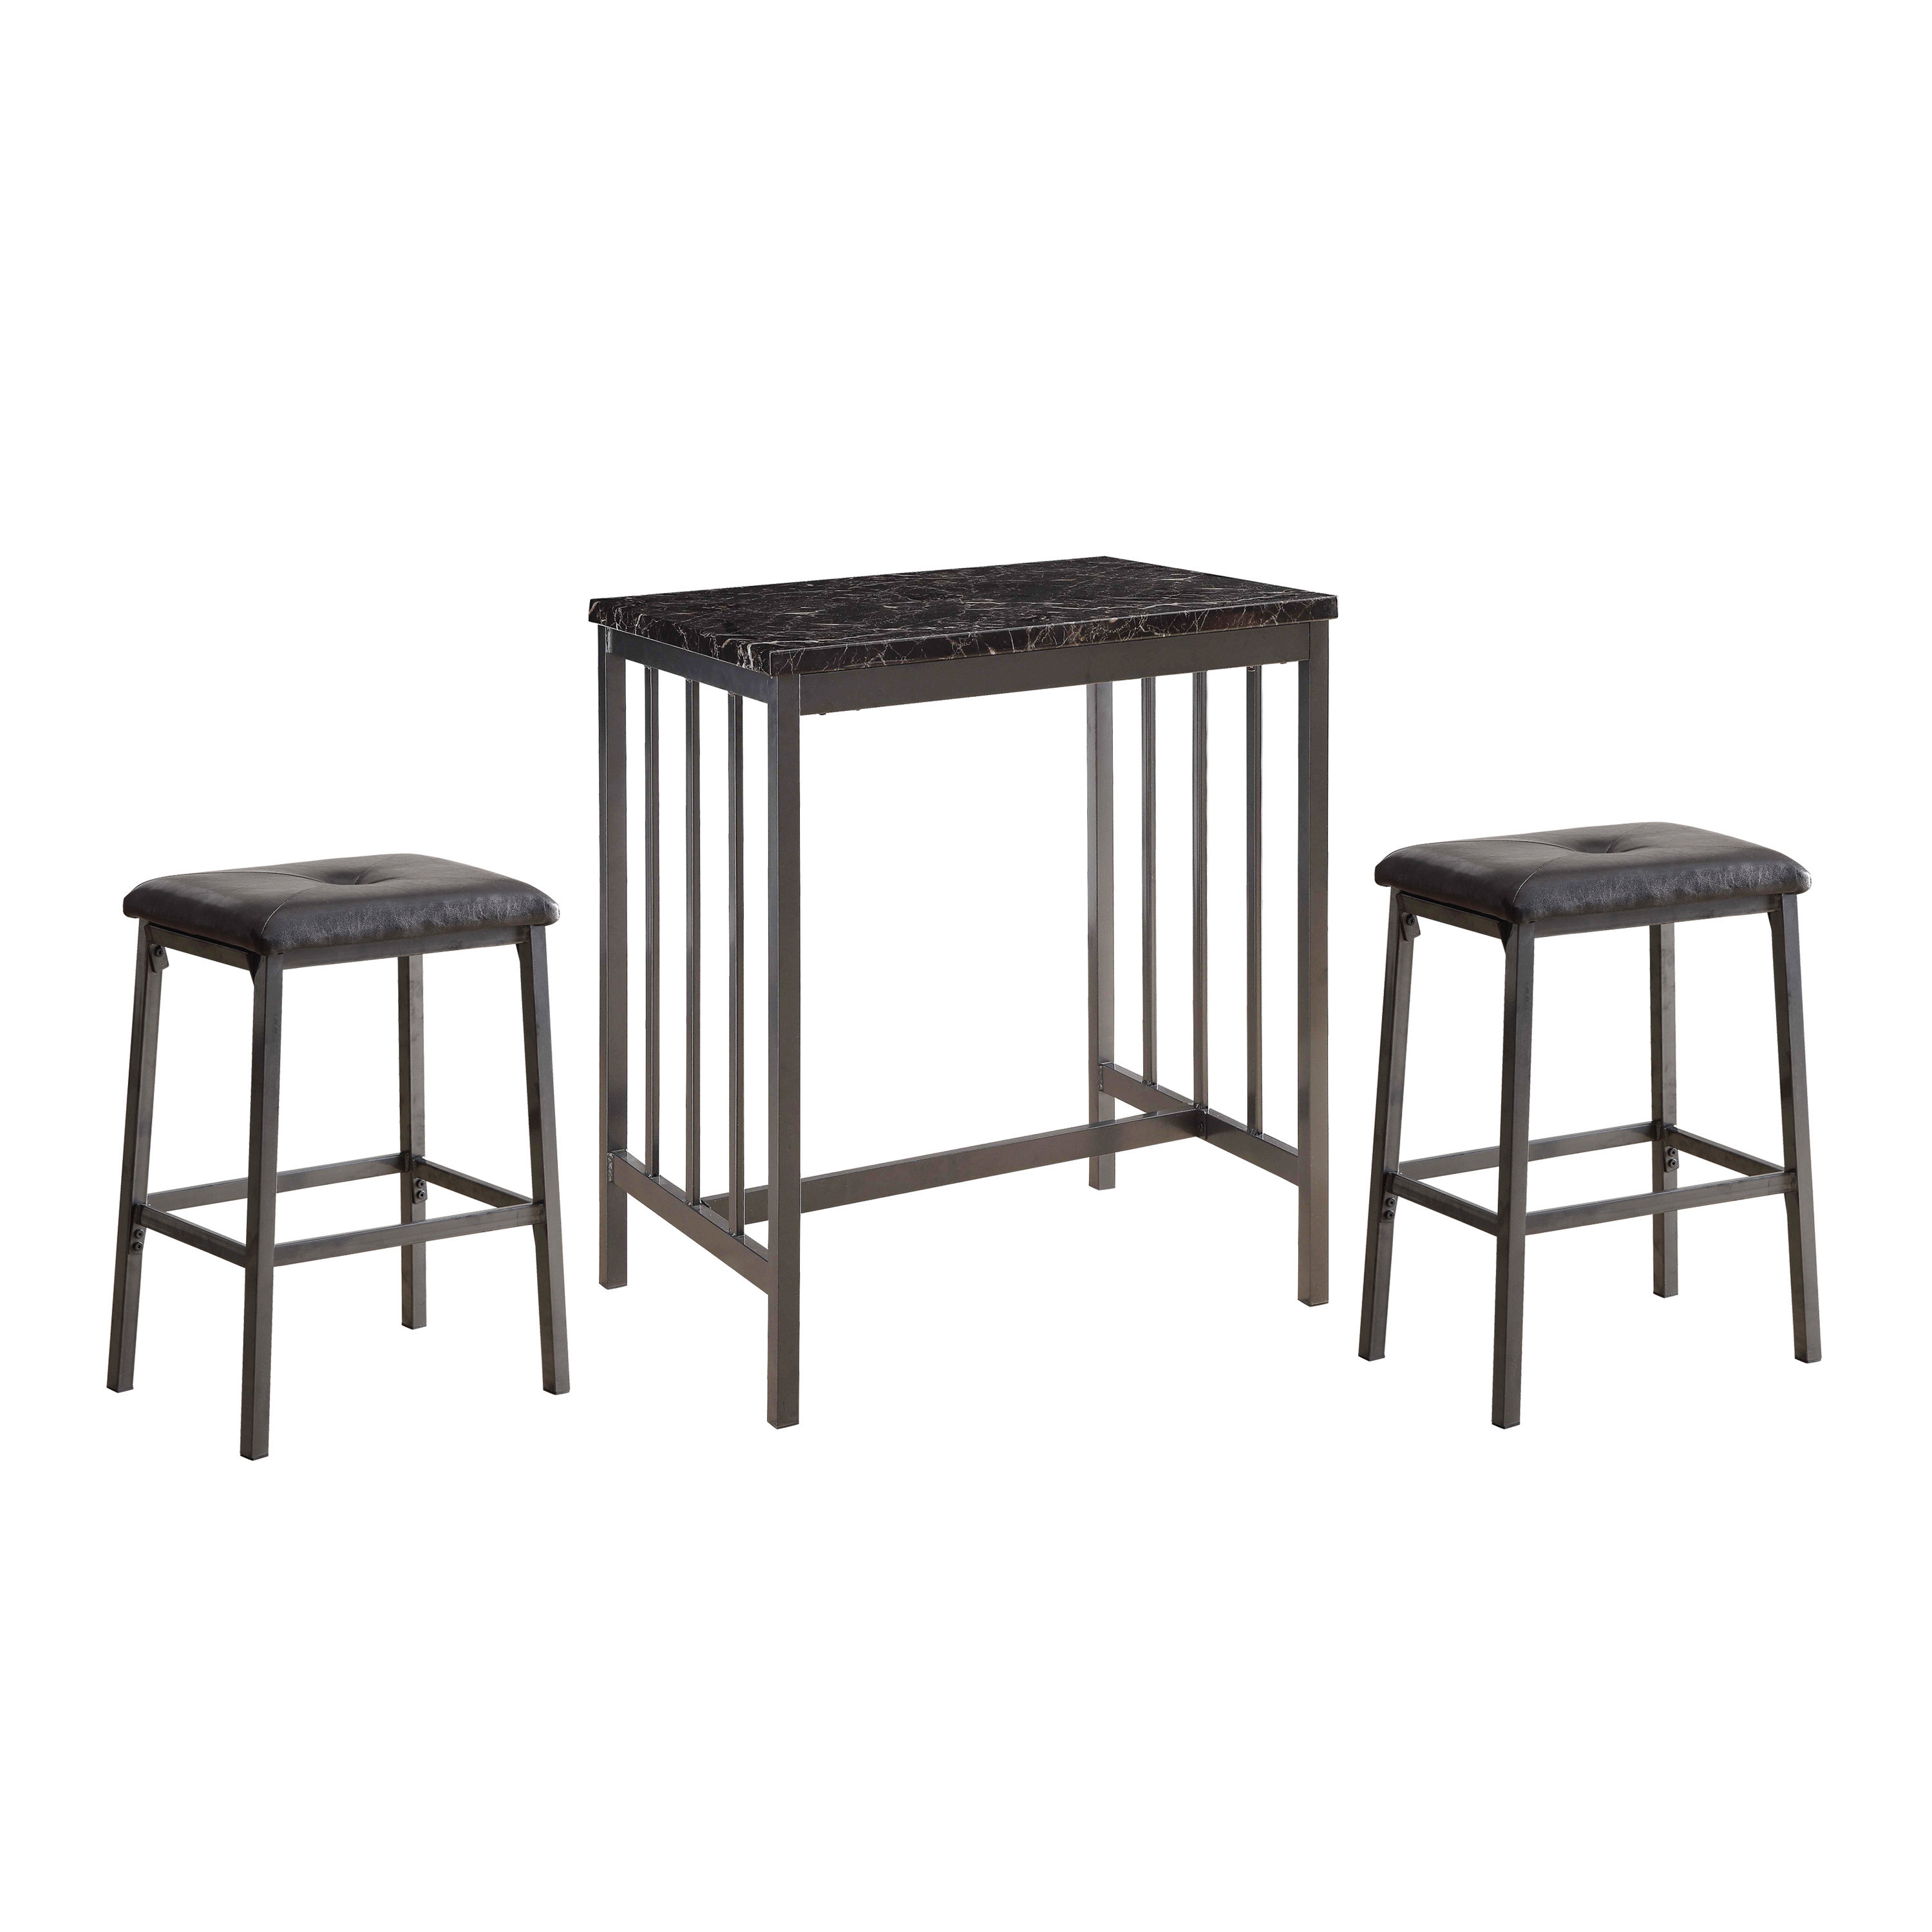 Miskell 3 Piece Dining Sets Regarding Most Recent Winston Porter Acme Venator 3 Pieces Pack Counter Height Set In Grey (View 15 of 25)